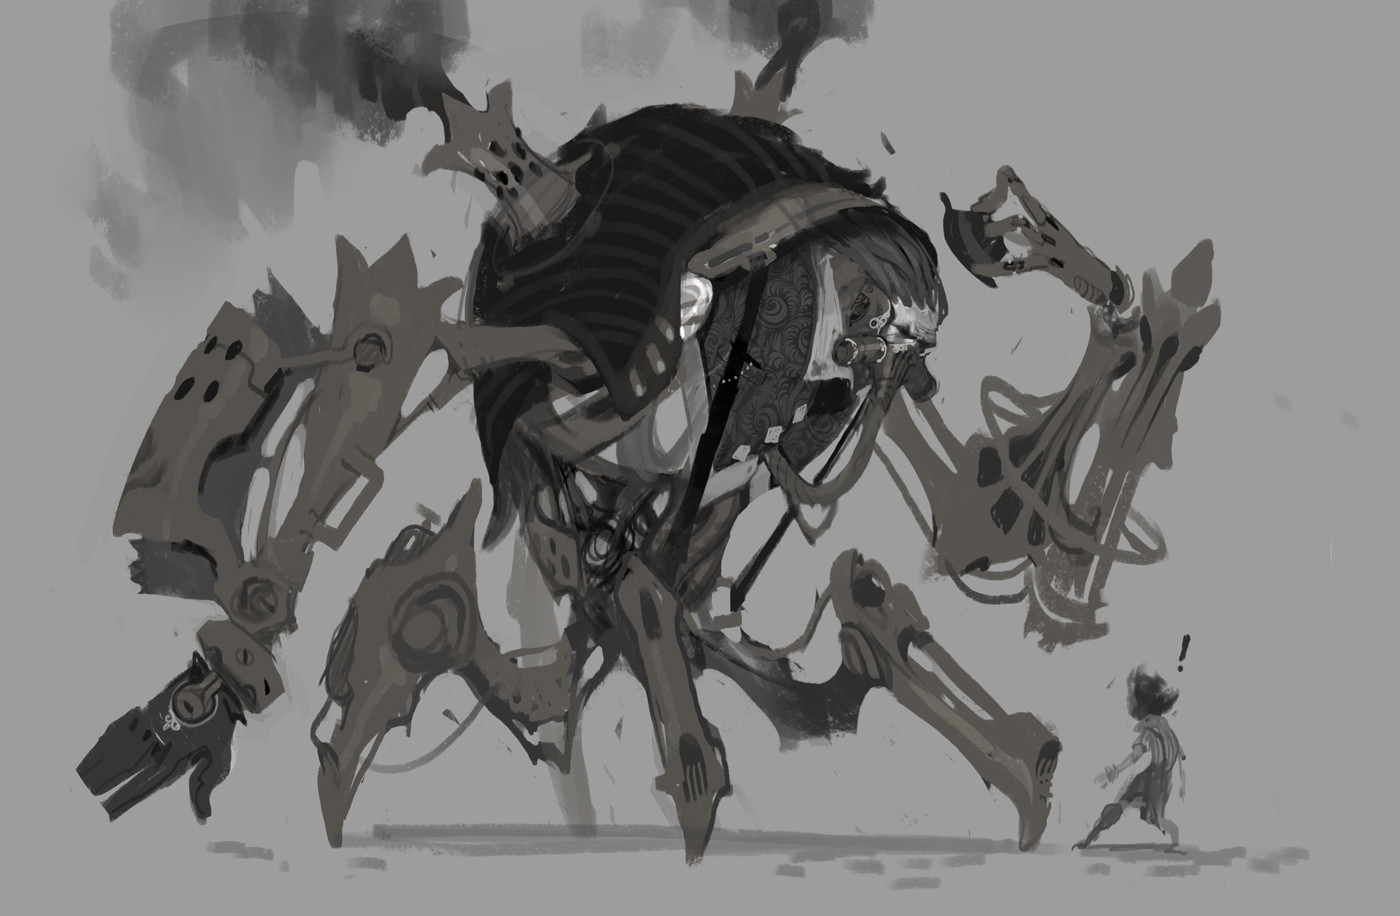 Urgot's dapper jackets in early concept art helped devs think of him as more than just a monster.